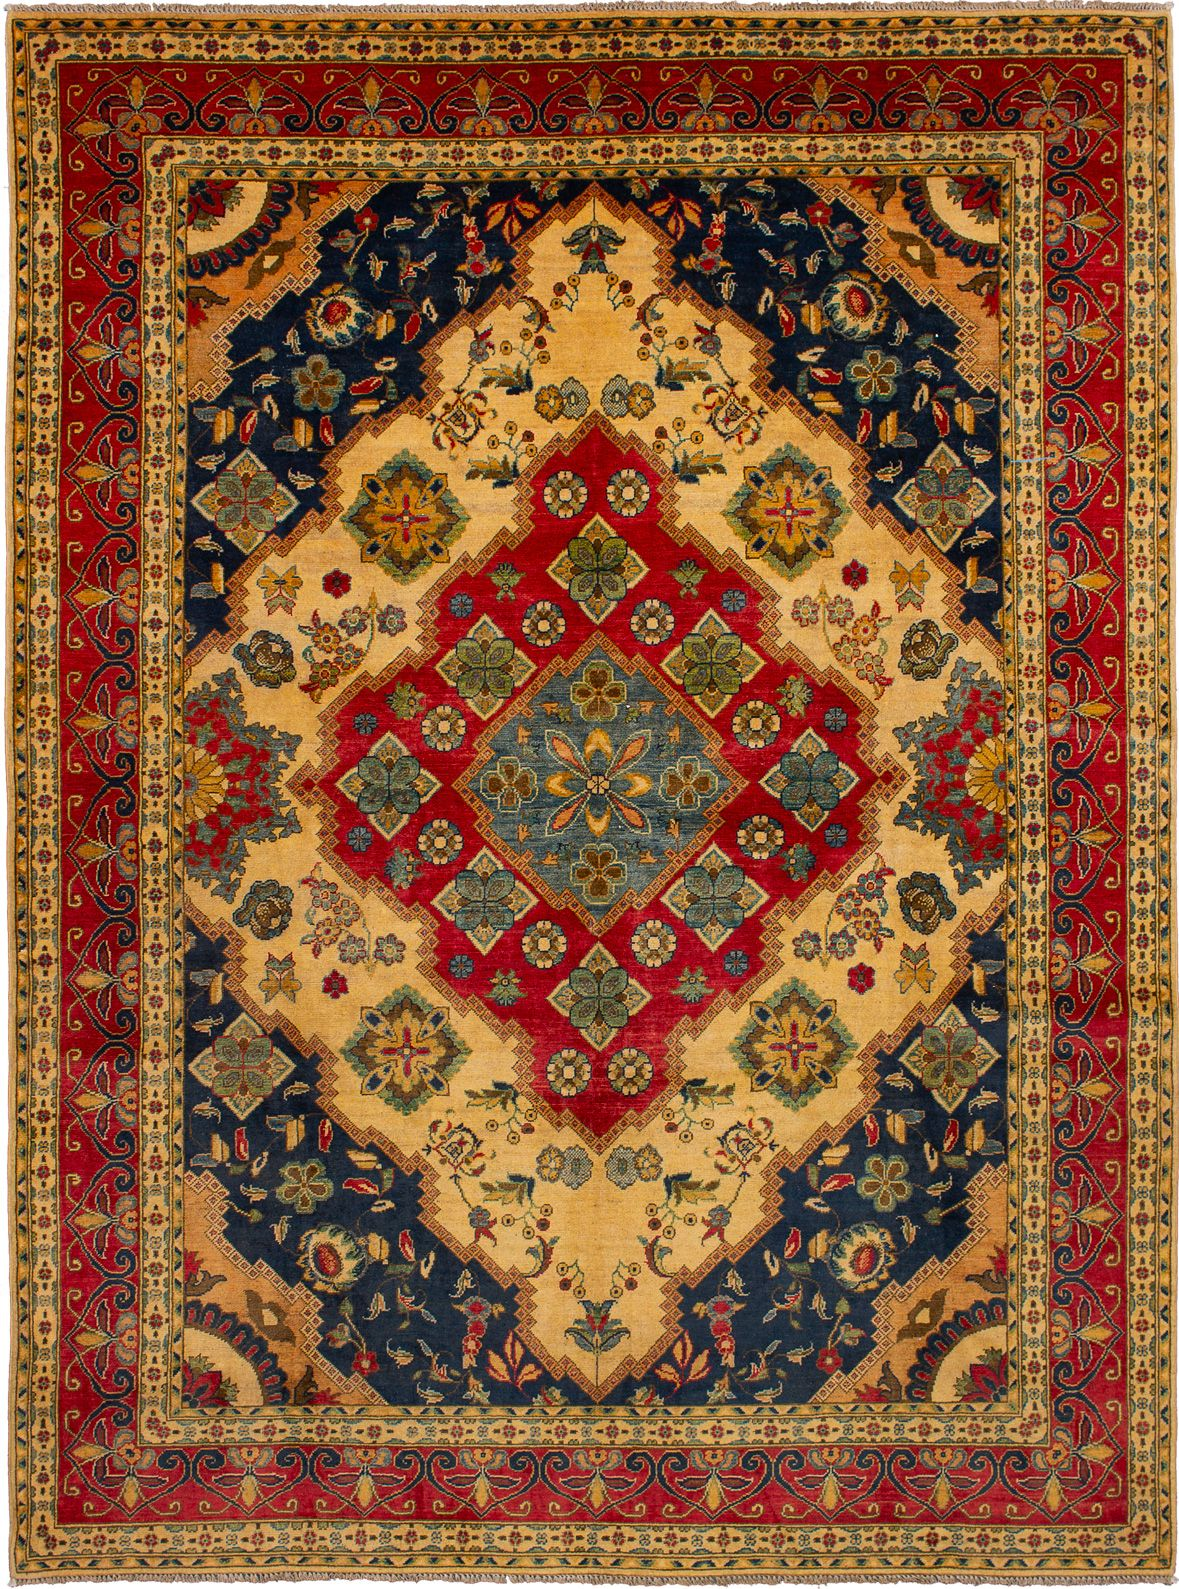 Hand Knotted Finest Gazni Cream Red Wool Rug 7 8 X 10 4 With Images Antique Persian Carpet Rugs On Carpet Buying Carpet